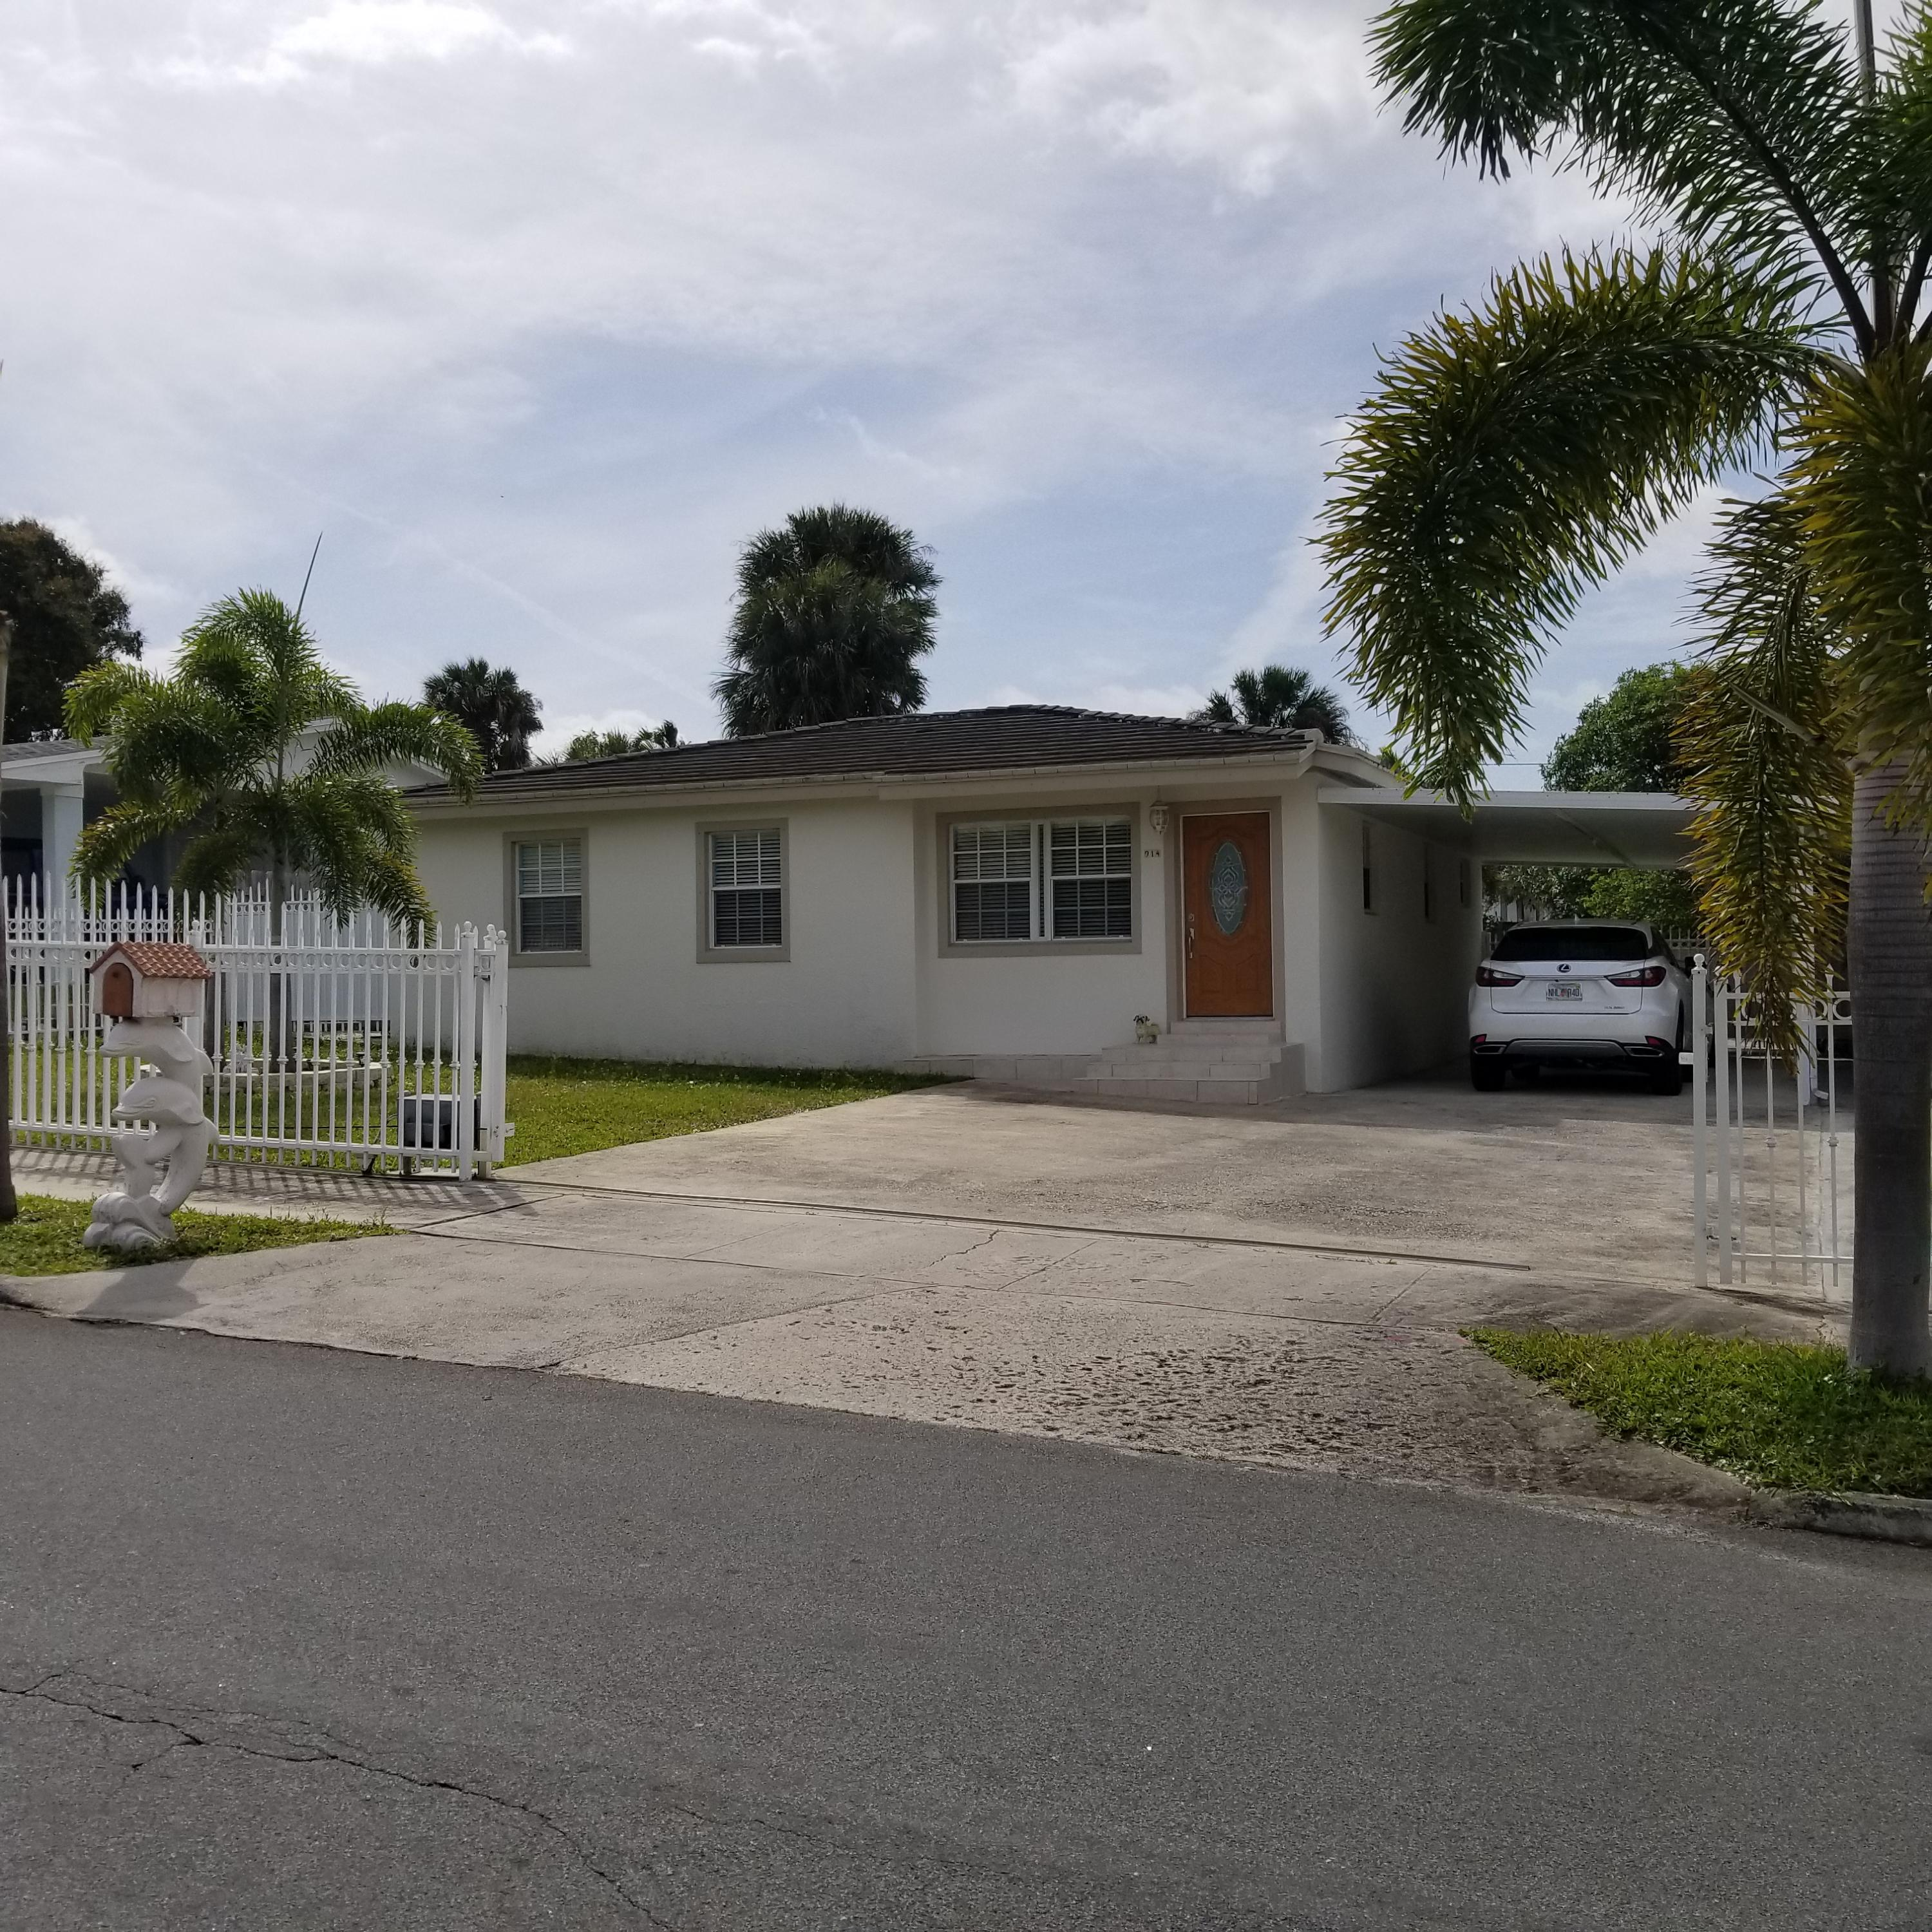 Home for sale in Bacon Park Heights West Palm Beach Florida